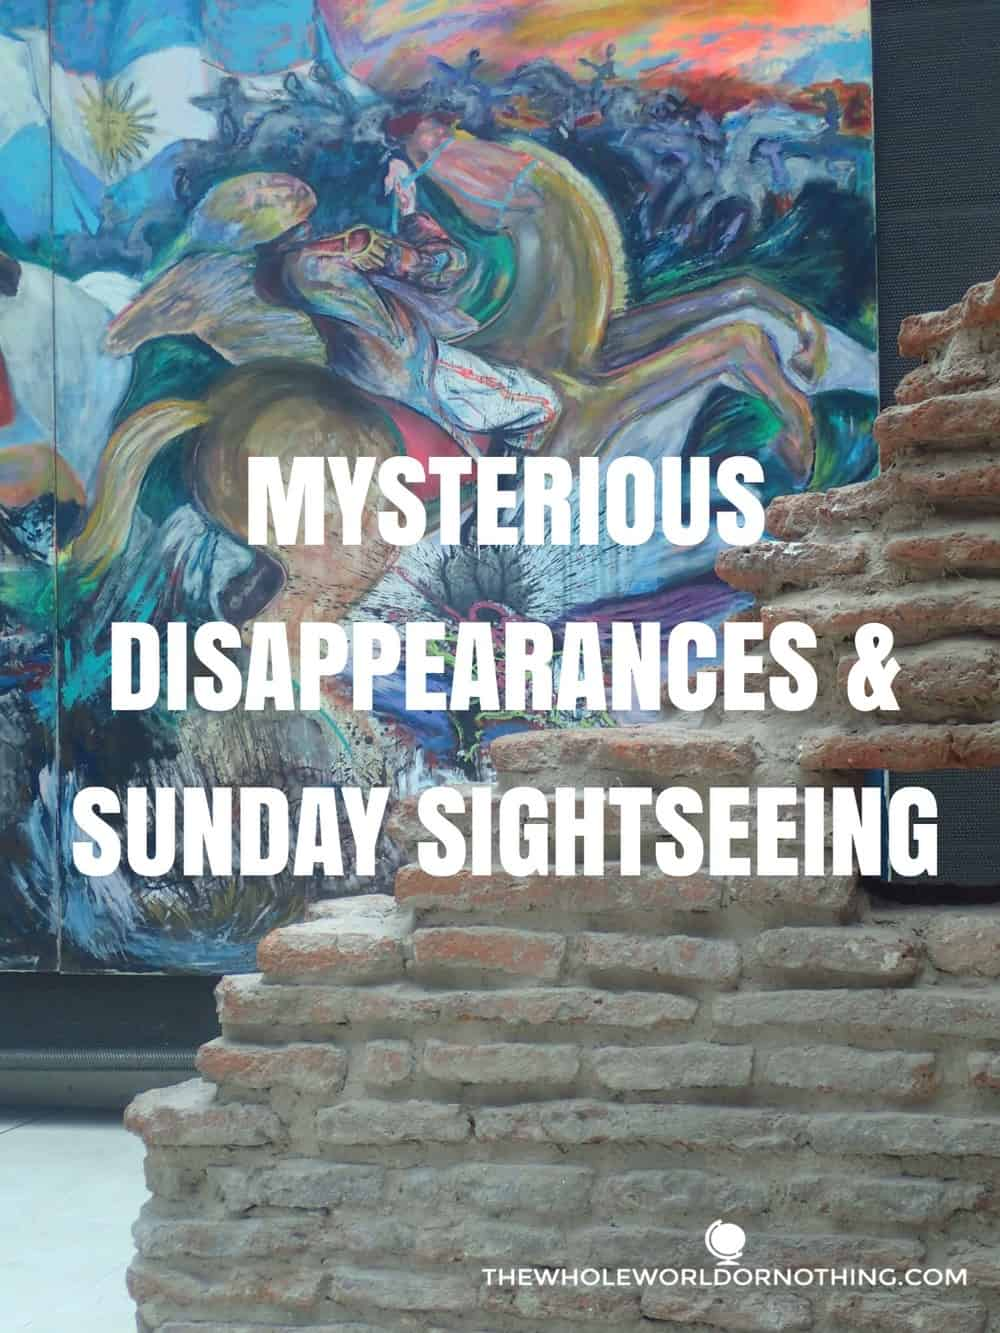 painting with text overlay MYSTERIOUS DISAPPEARANCES & SUNDAY SIGHTSEEING